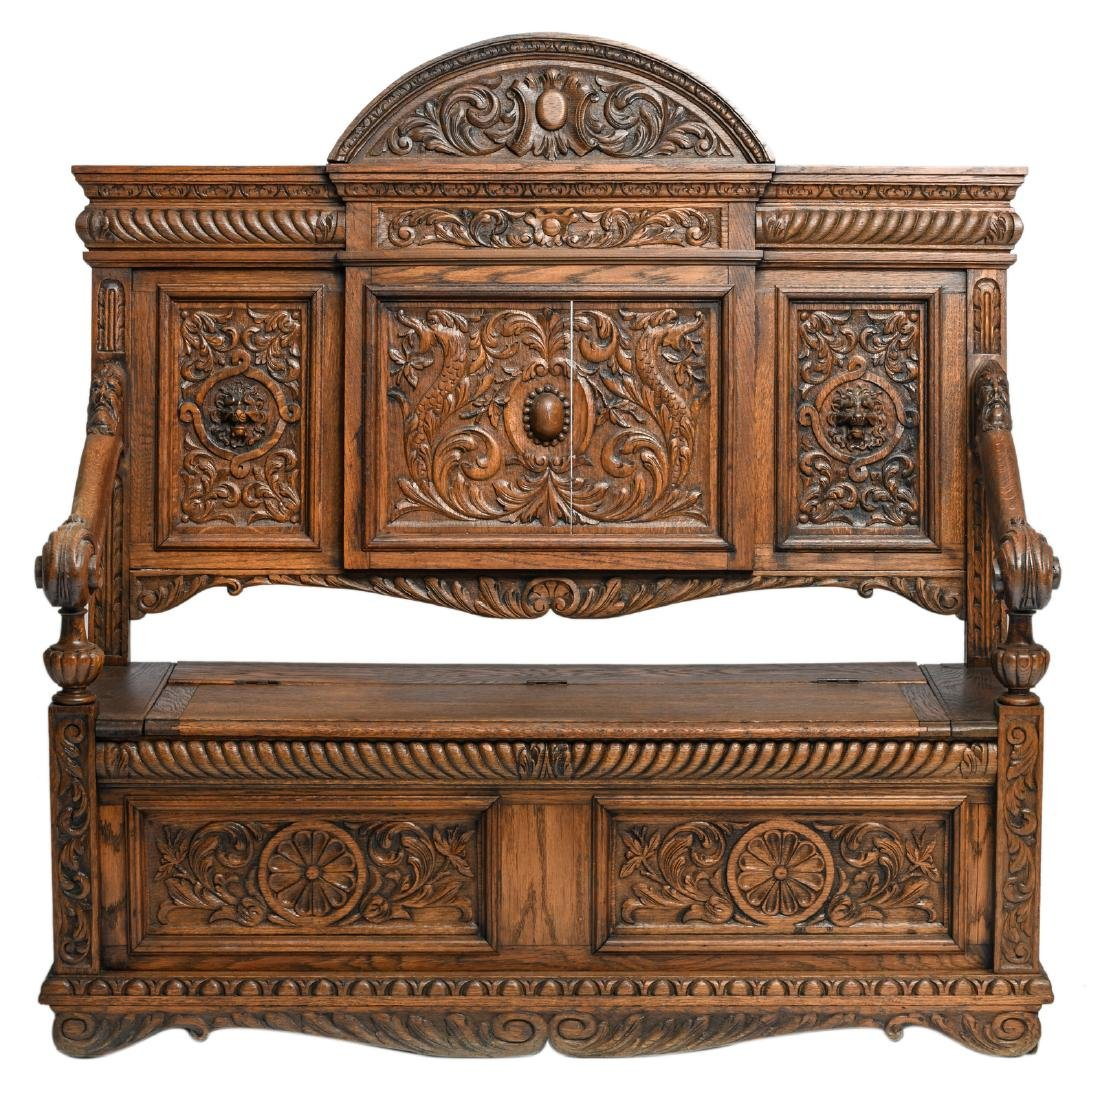 An oak Renaissance revival coffer bench seat, H 141,5